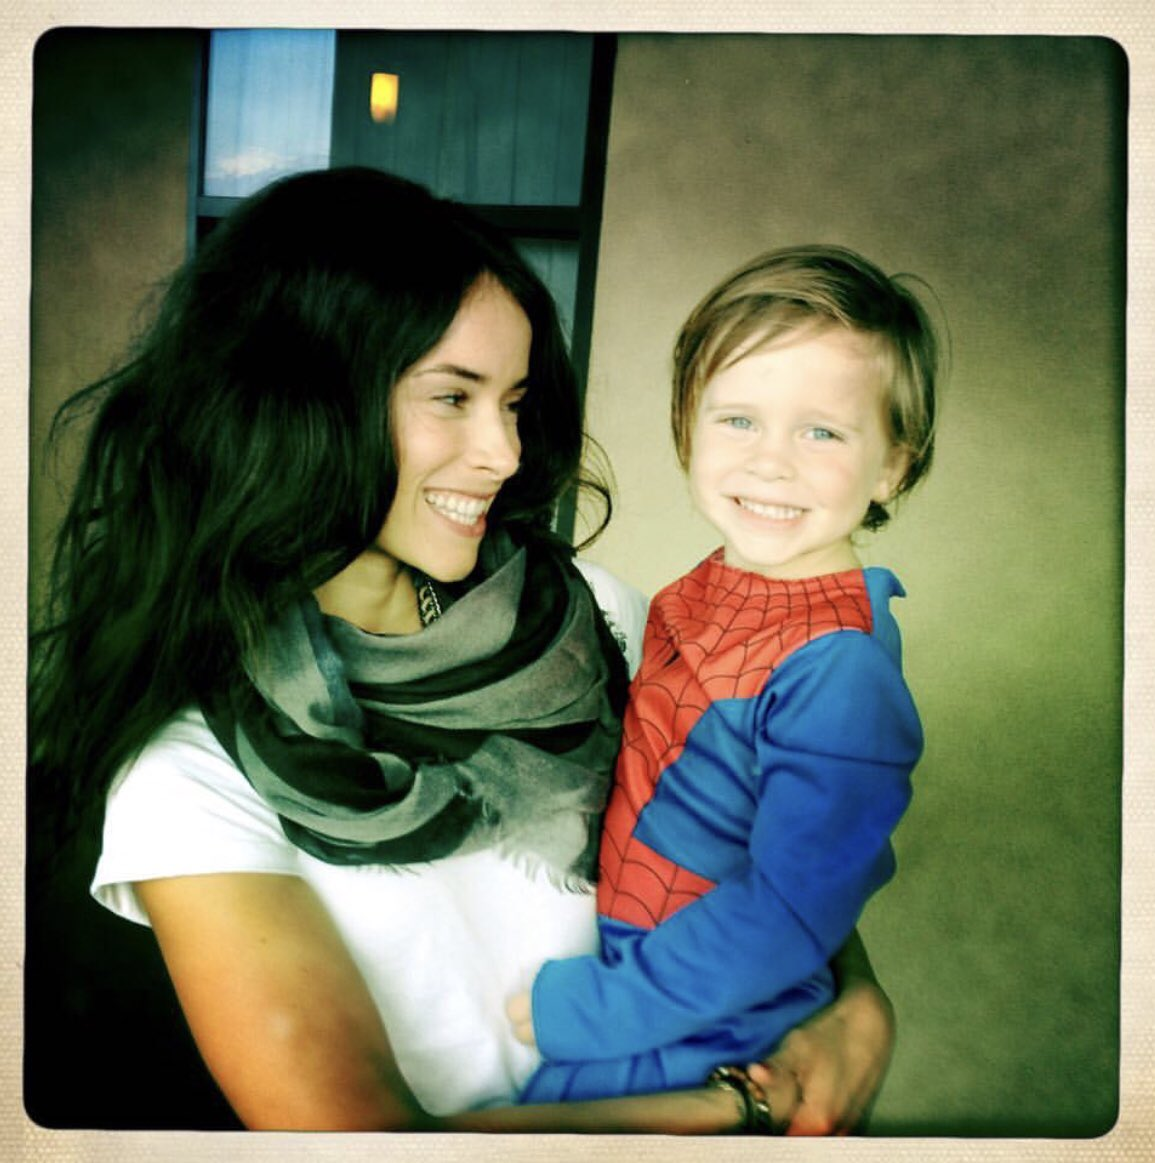 Spencer with her son